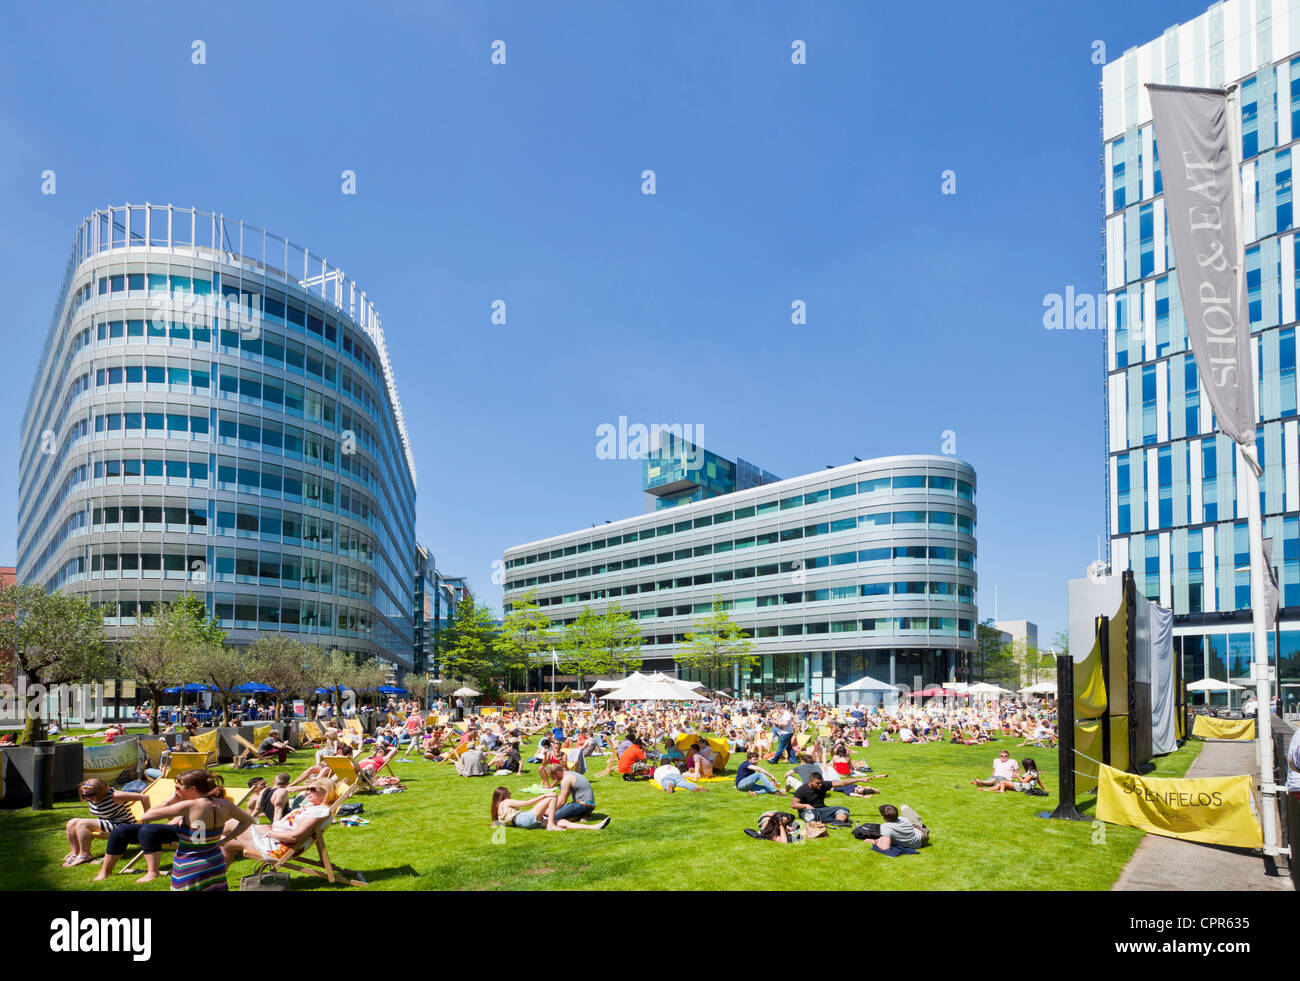 Crowds enjoying the hot weather and sunshine in the city centre Spinningfields  Greater Manchester England UK GB - Stock Image